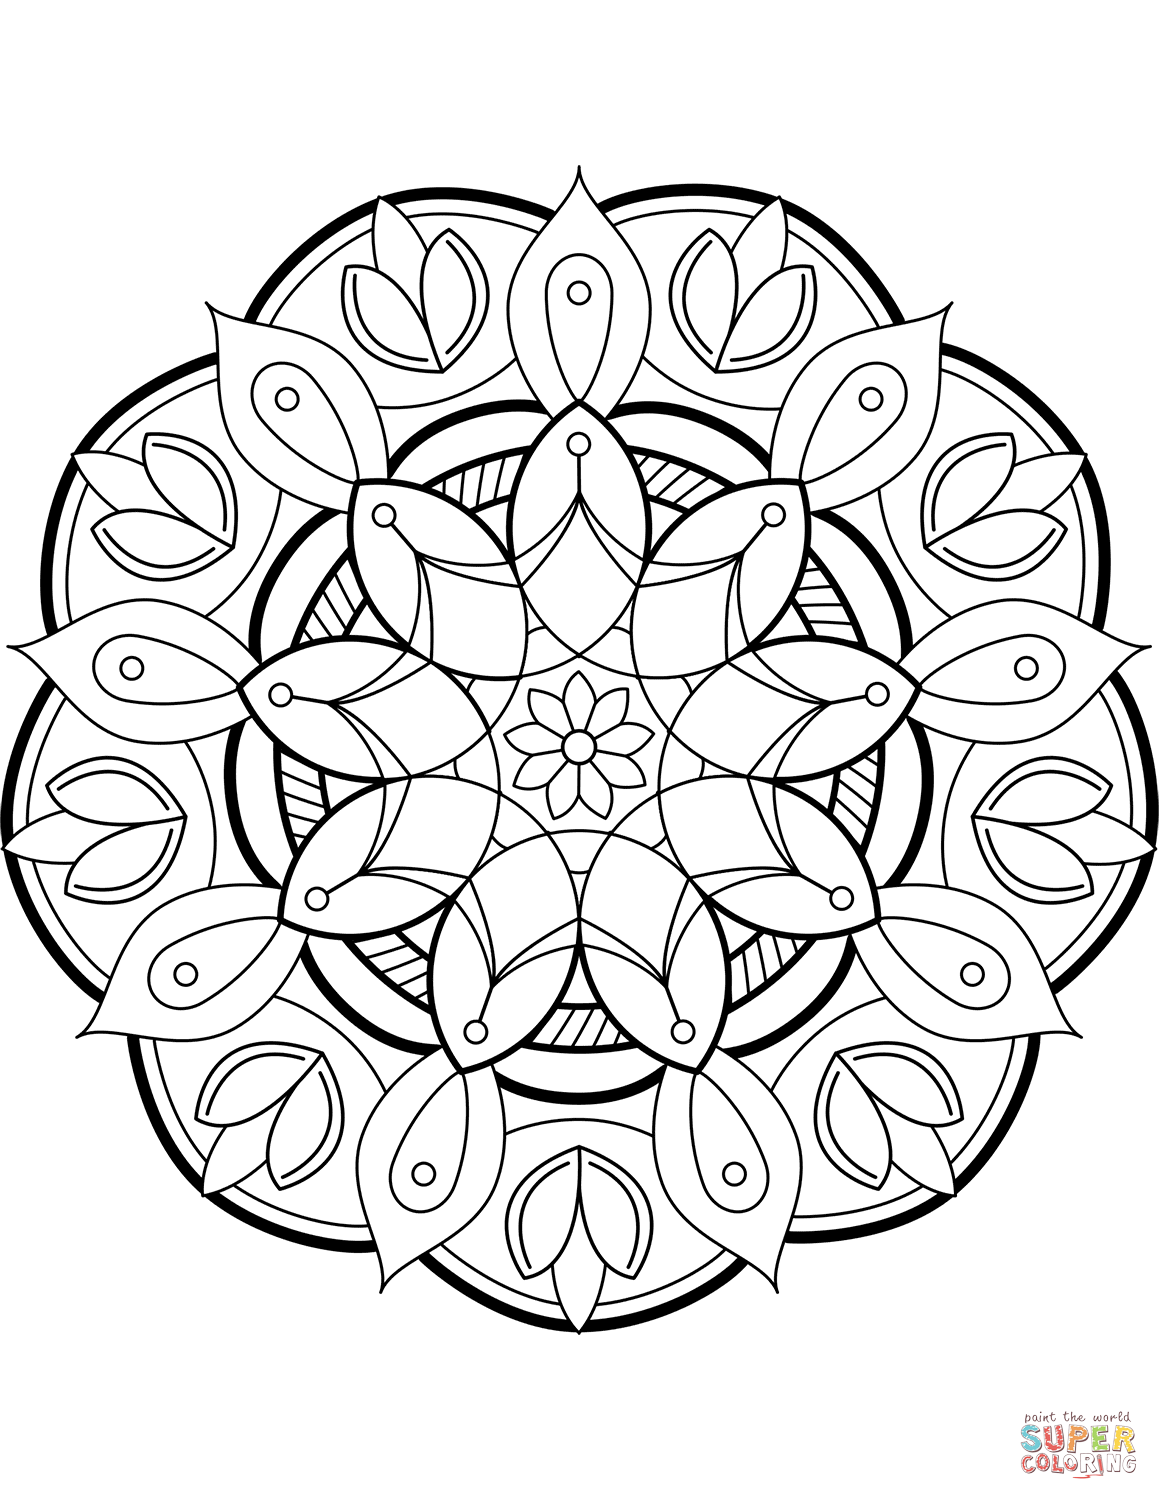 Flower Mandala Coloring Page Free Printable Coloring Pages Flower Mandala Coloring Page Free Mandala Coloring Pages Flower Mandala Flower Coloring Pages